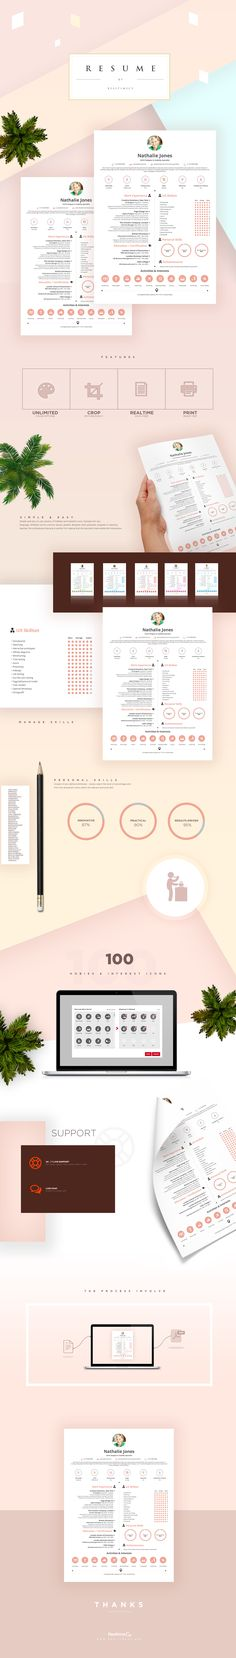 Flexi Resume Builder Template enables you create your CV online - awesome resume builder